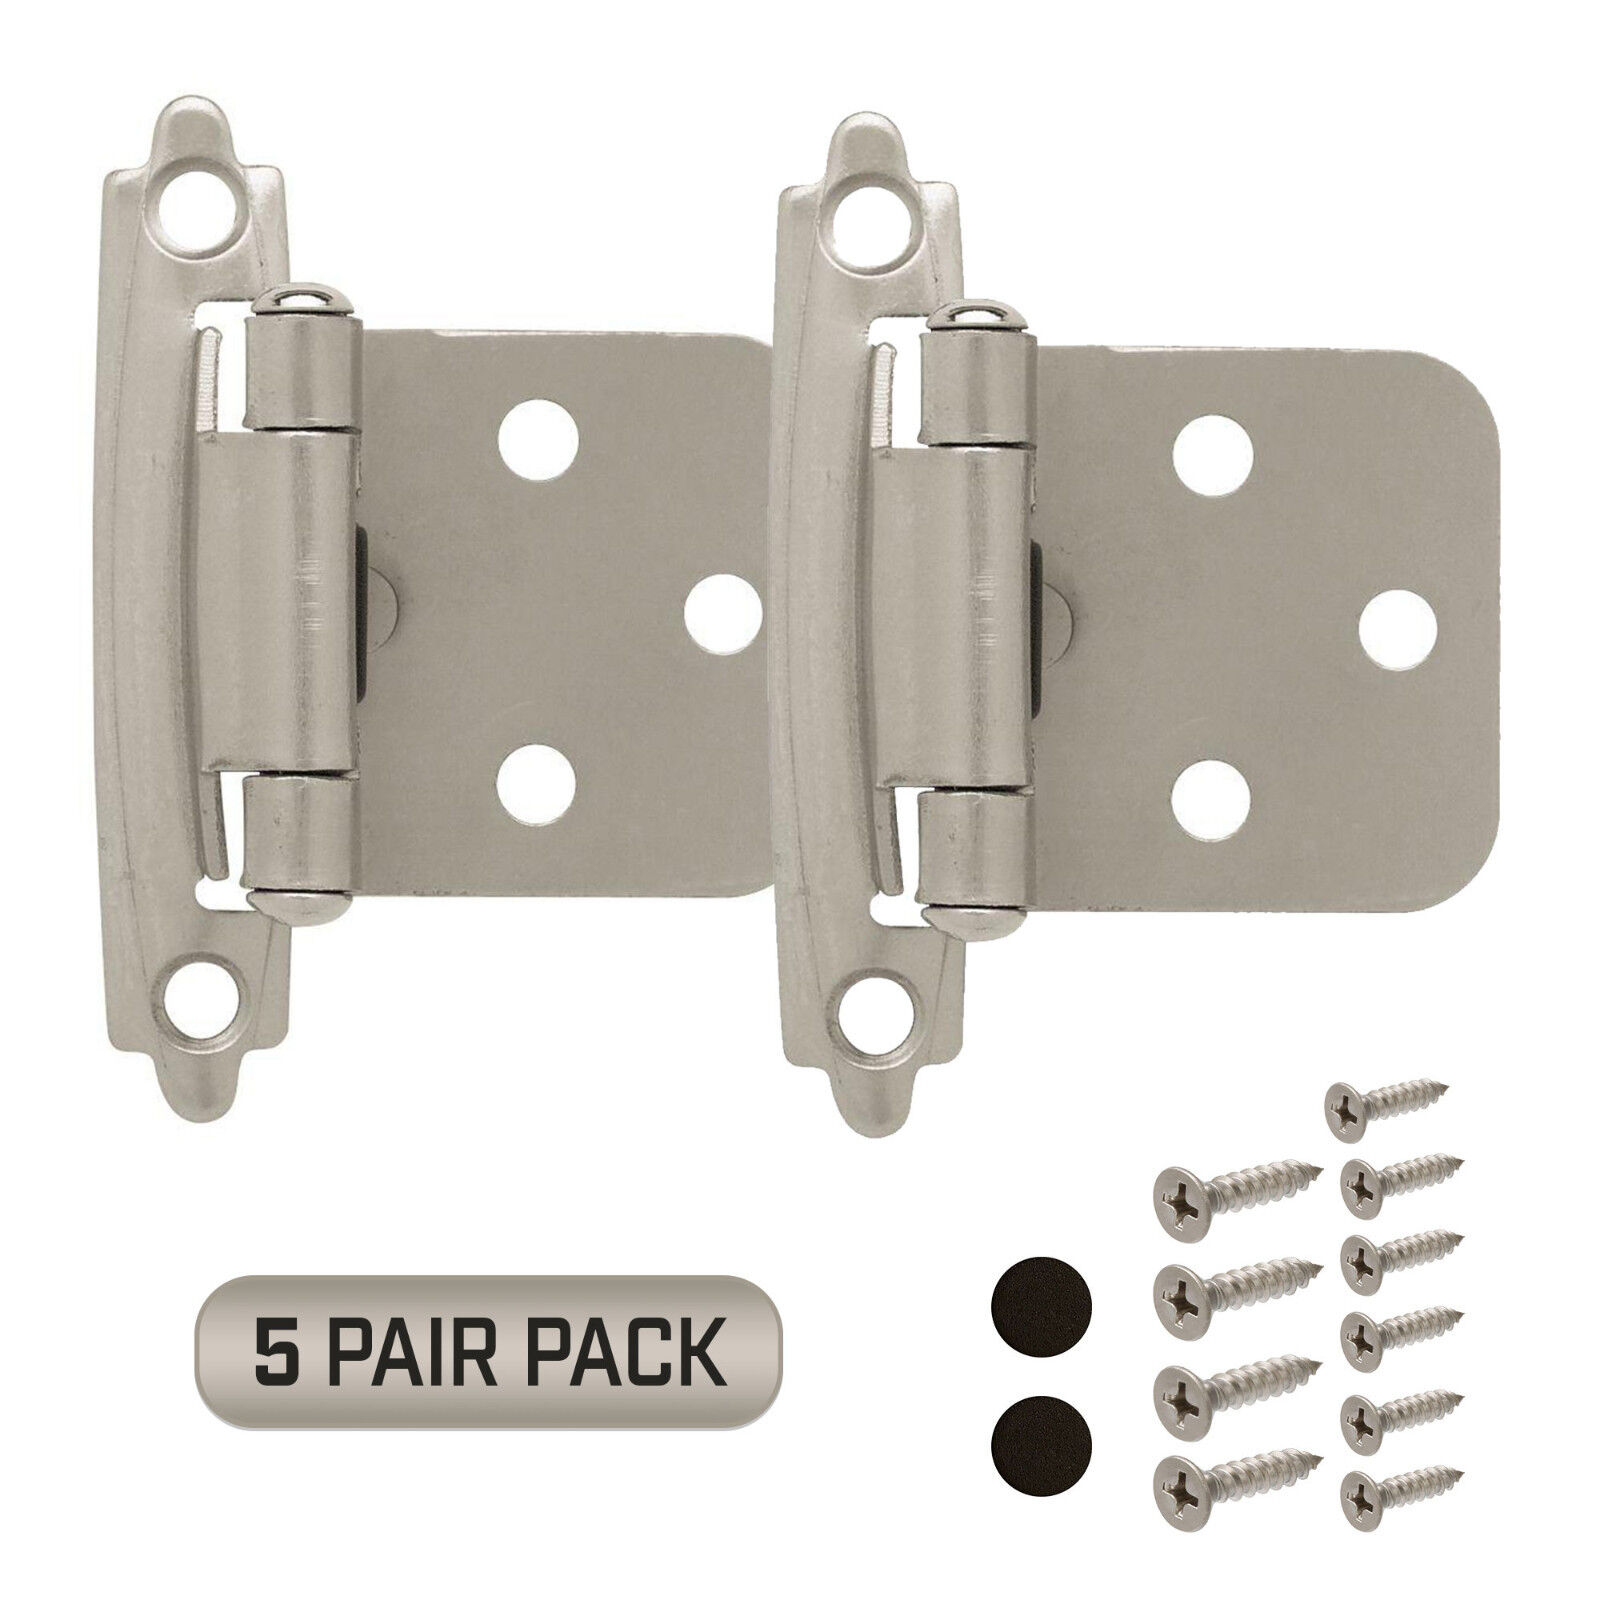 Cabinet Hinges 5 Pair Pack (10 Pcs) Self Closing Face Mount Overlay Satin Nickel Building & Hardware